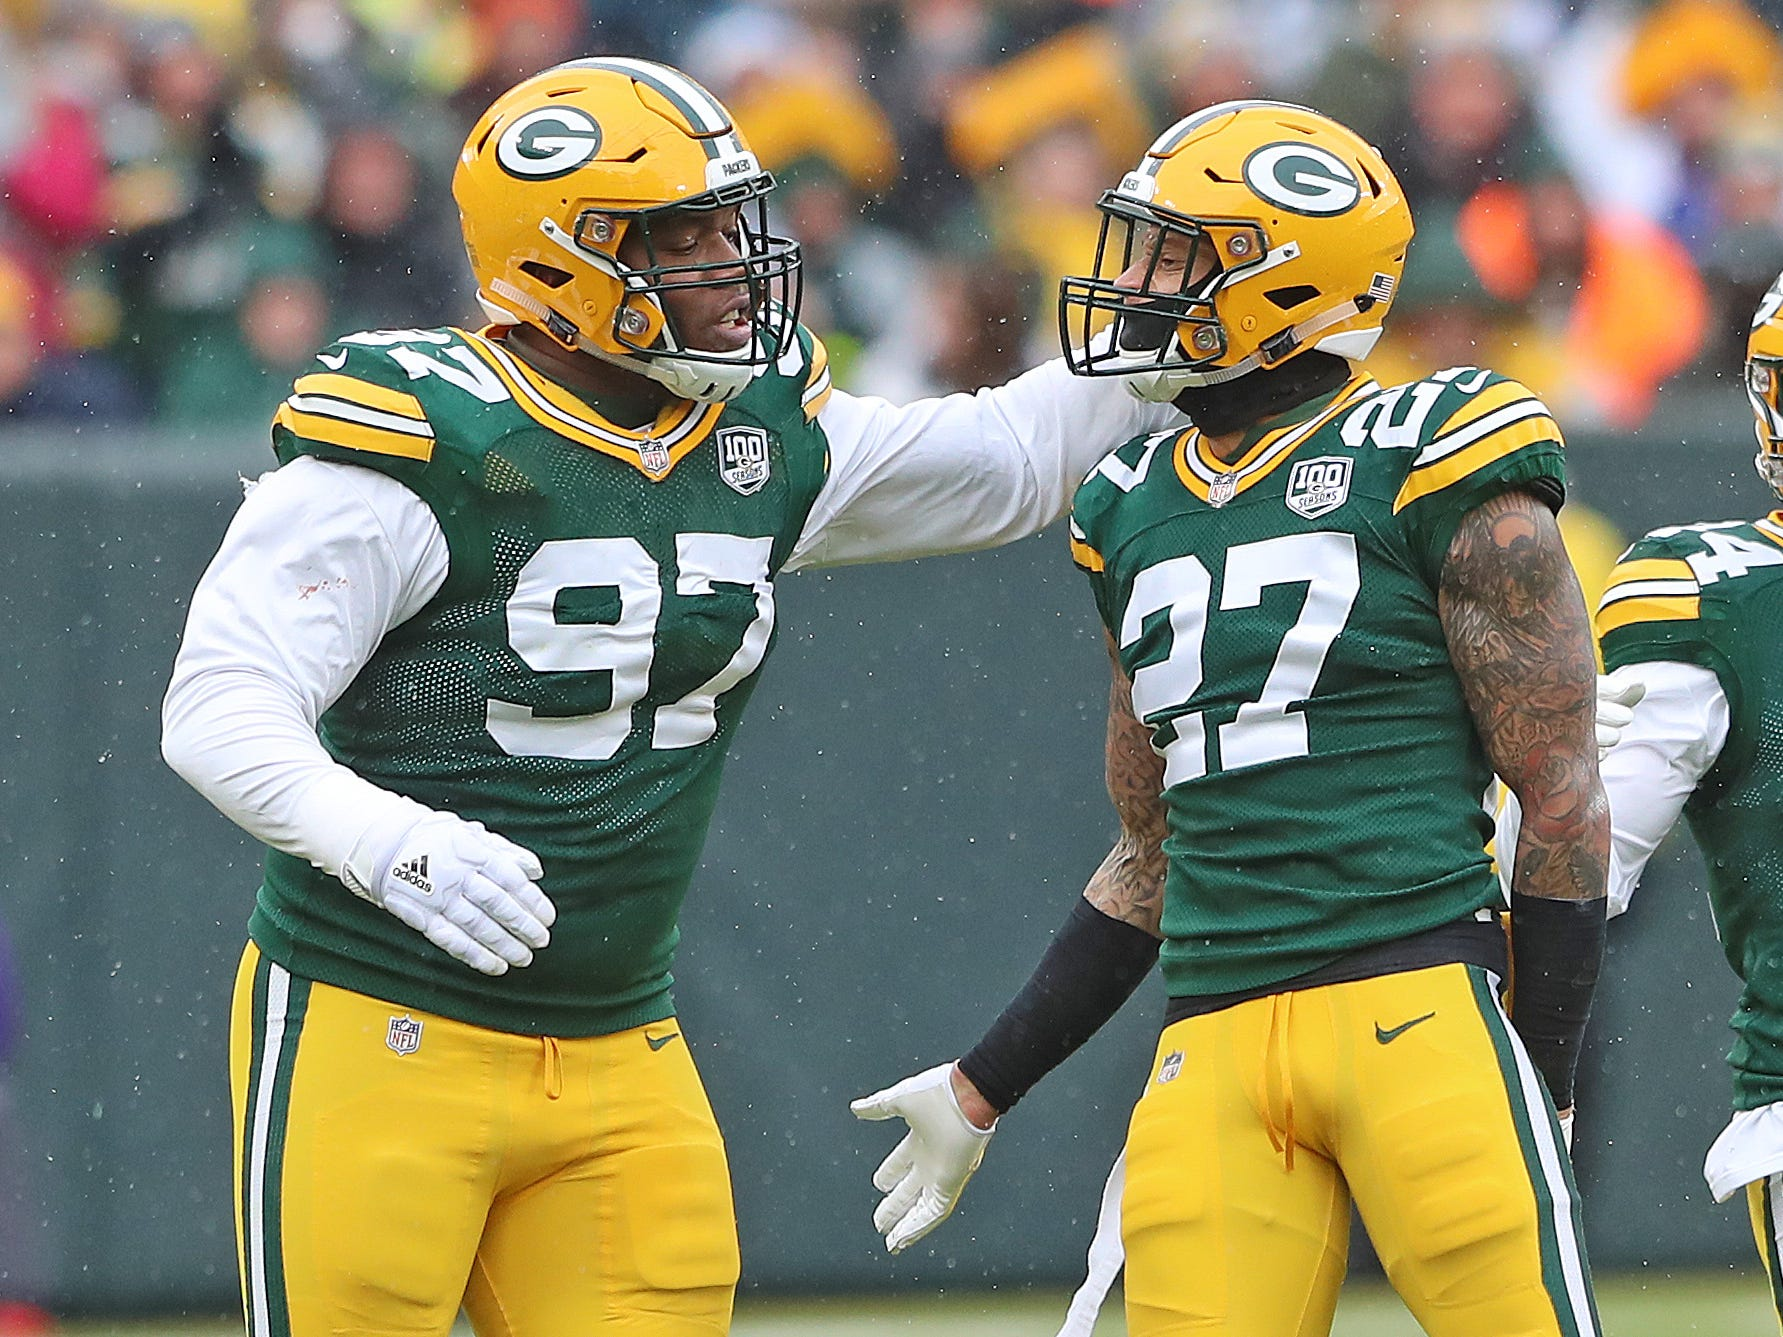 Green Bay Packers defensive back Josh Jones (27) and nose tackle Kenny Clark (97) celebrate a defensive stop against the Arizona Cardinals Sunday, December 2, 2018 at Lambeau Field in Green Bay, Wis. Jim Matthews/USA TODAY NETWORK-Wis